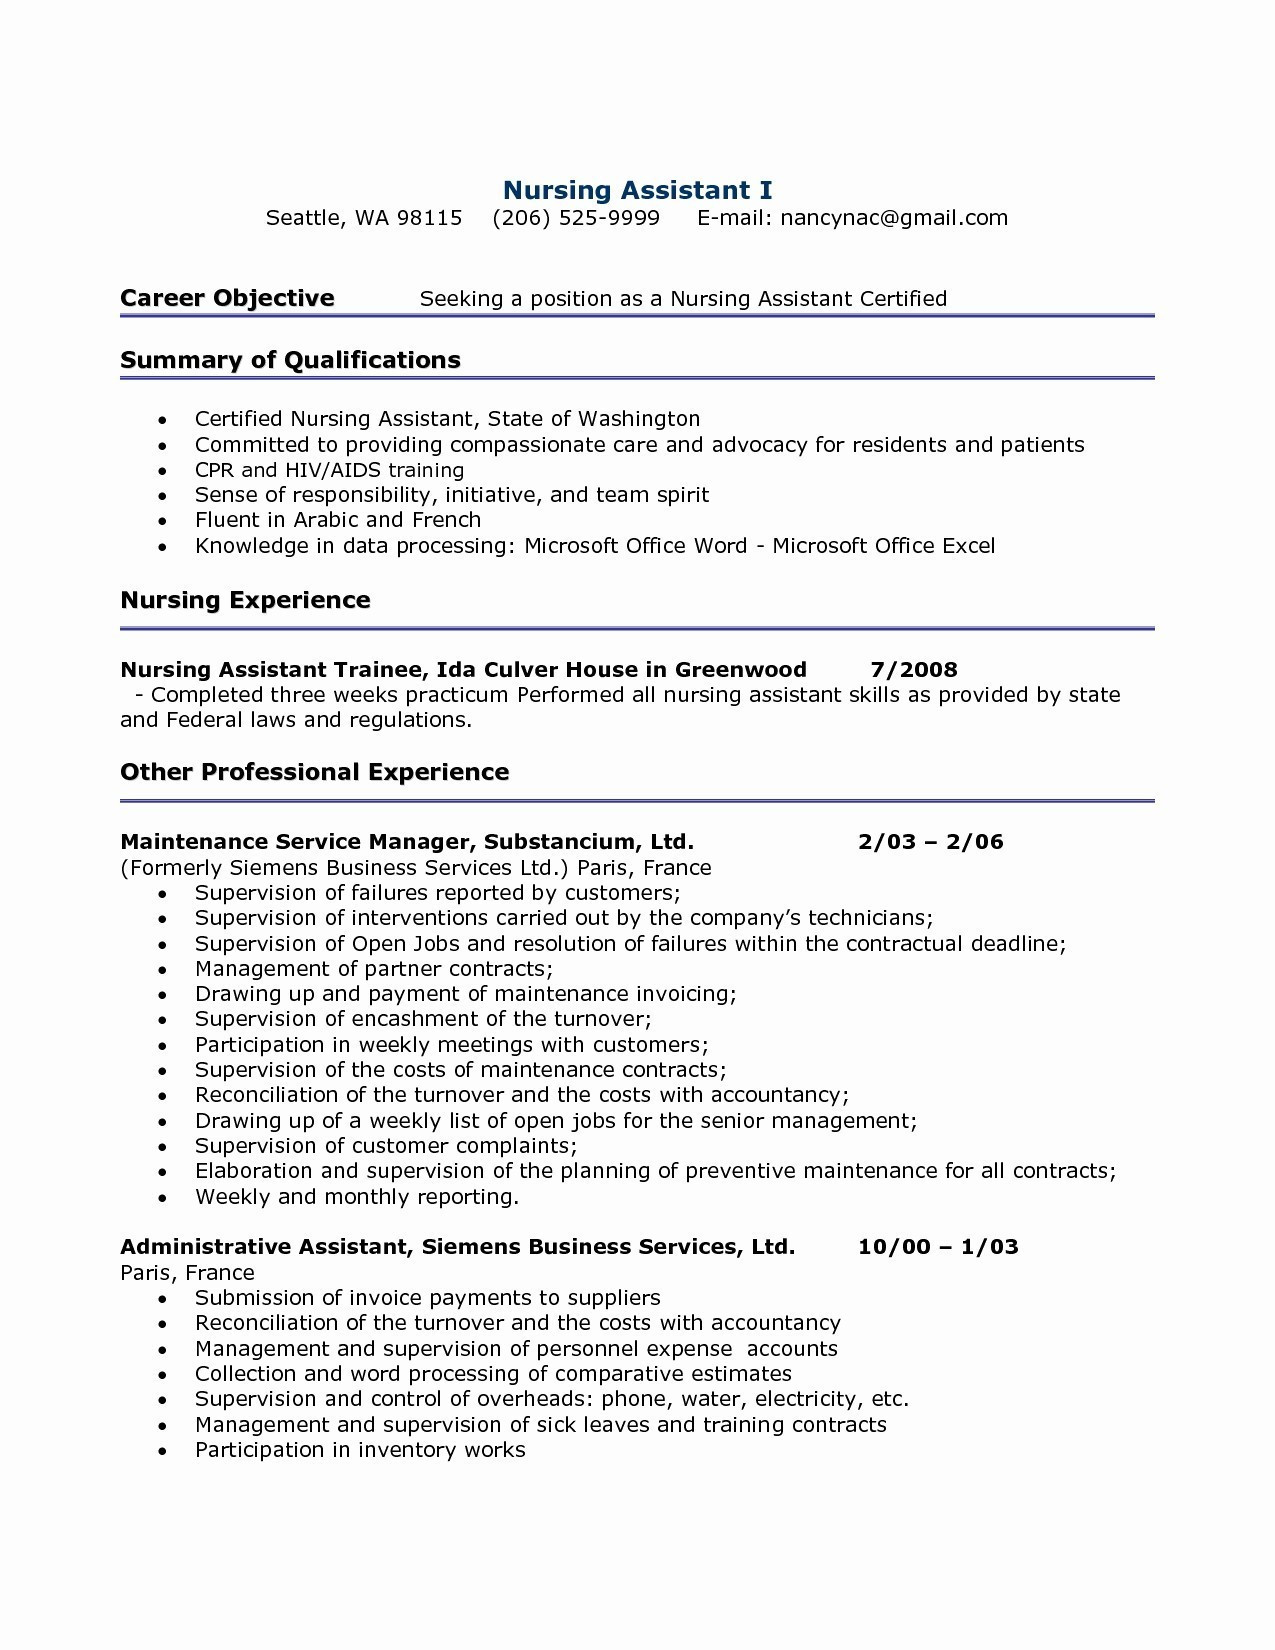 Oil Field Resume - Graphic Design Resume Elegant Examples Pdf Best 0d Website Templates